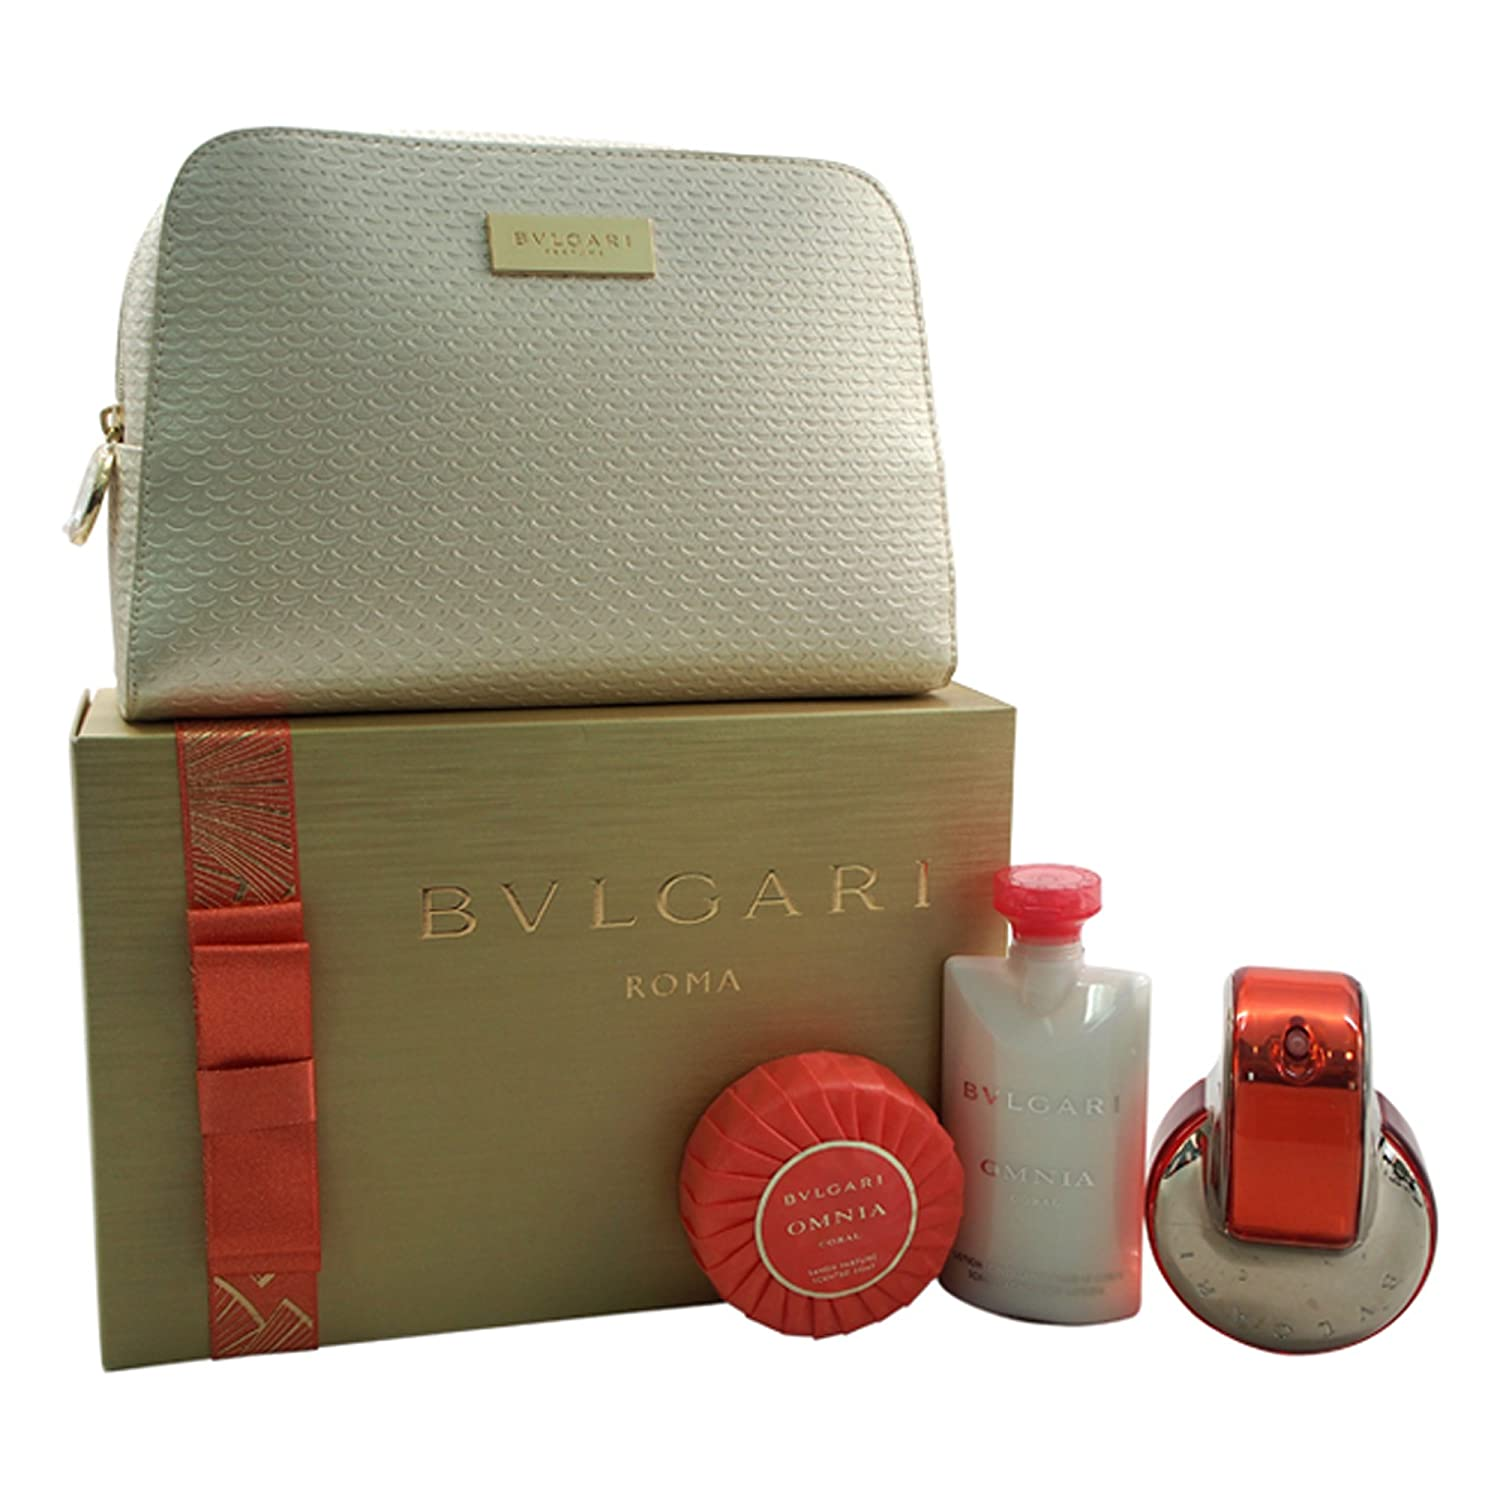 Bvlgari Omnia Coral Set 65ml Eau de Toilette + 75ml Body Lotion + 75g Seife + Pouch .